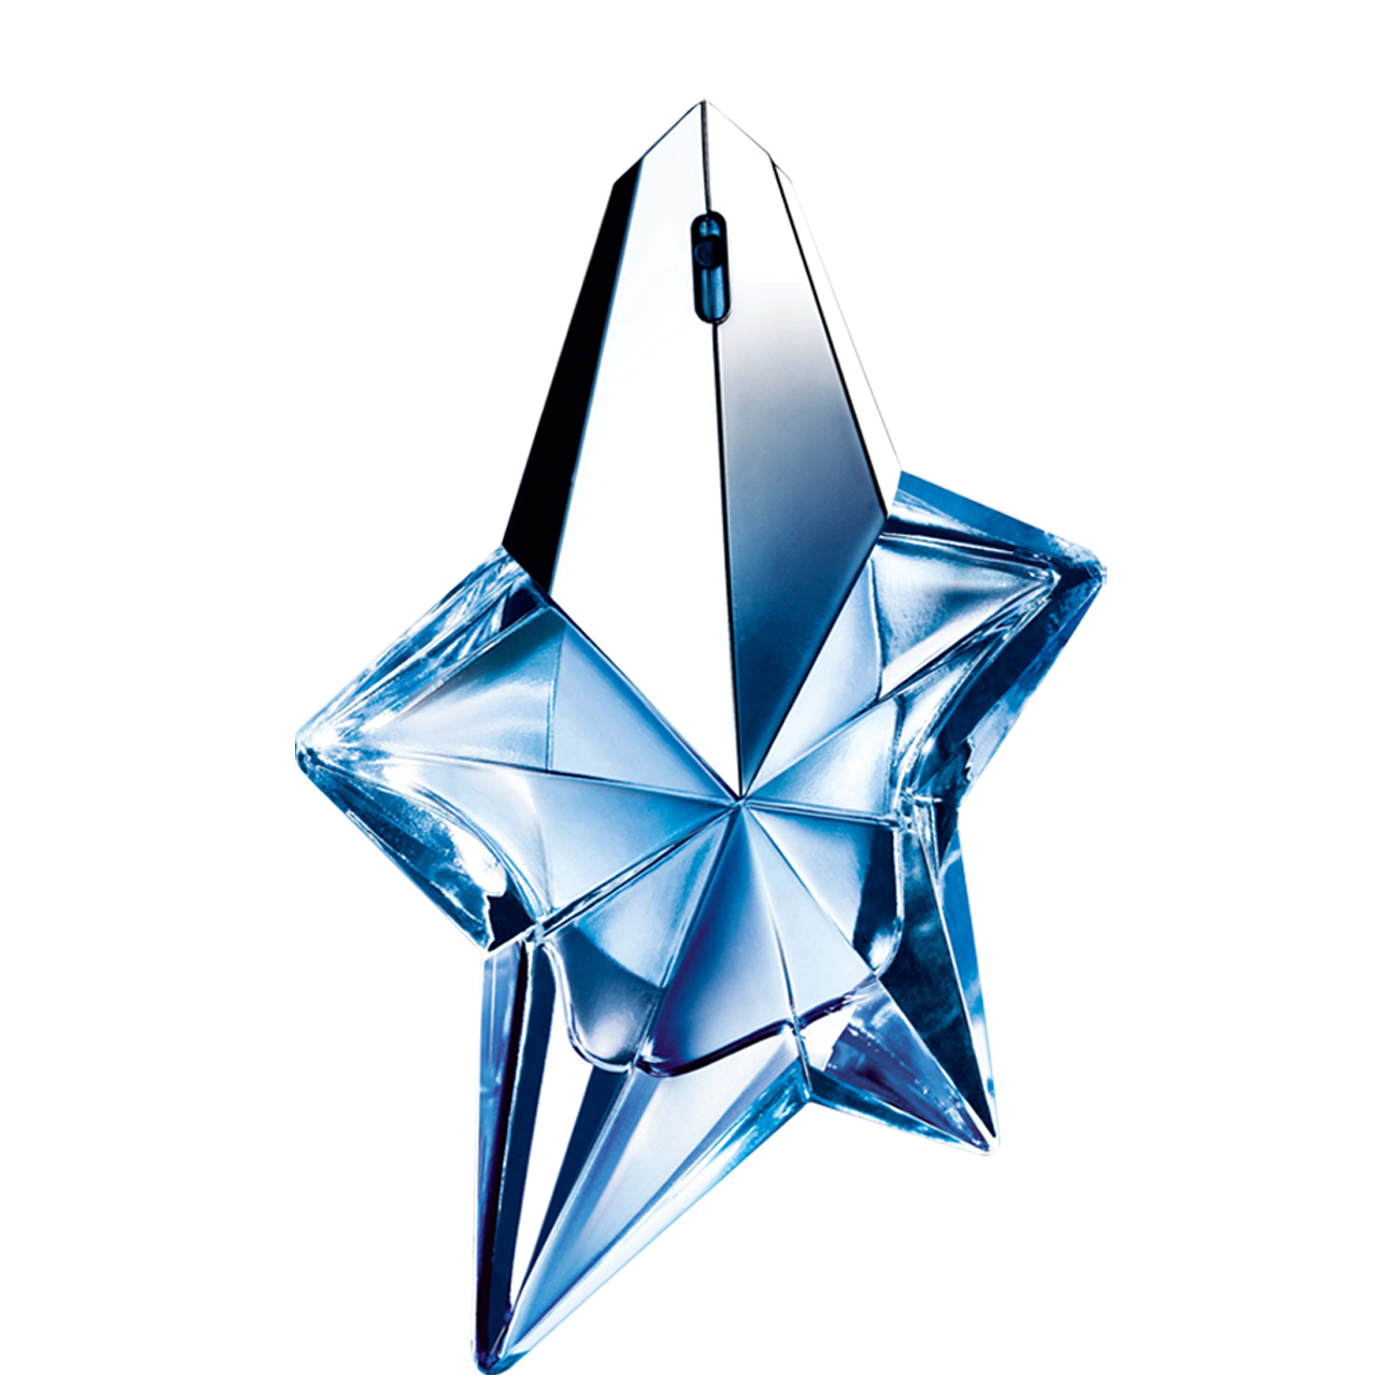 Angel Eau de Parfum Spray – Shooting Star - The Thierry Mugler Angel Shooting Star perfume bottle features blue gems and delicately sculpted facets that reflect light and shadows.  Available in refillable version Fragrance notes: bergamot, tropical fruits, vanilla, caramel and patchouli.